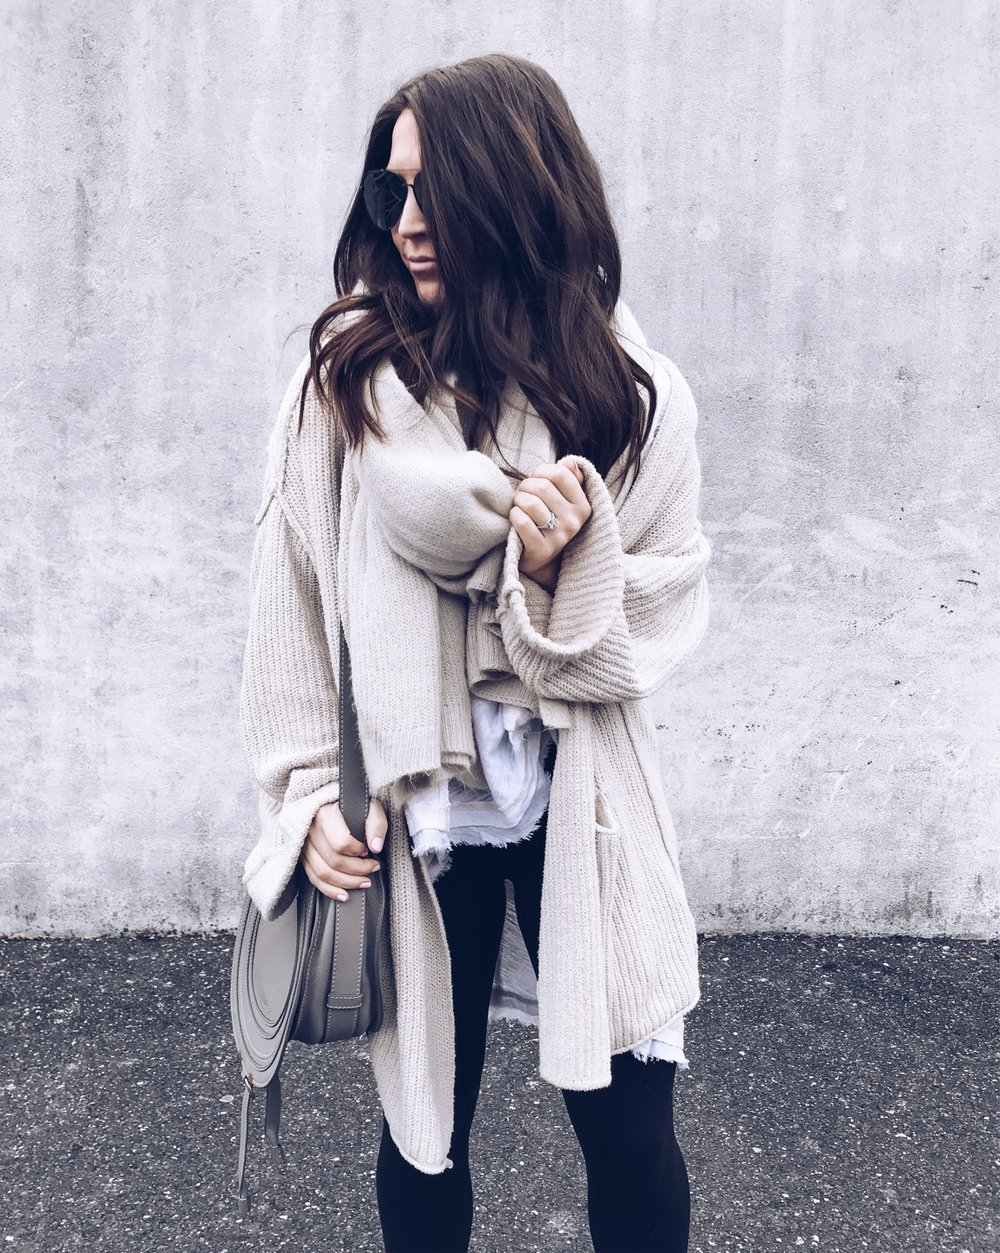 Instagram Round Up | Pine Barren Beauty | winter outfit idea, winter fashion, cozy outfit idea, cozy vibes, free people outfit, cozy cardigan, oversized scarf for winter